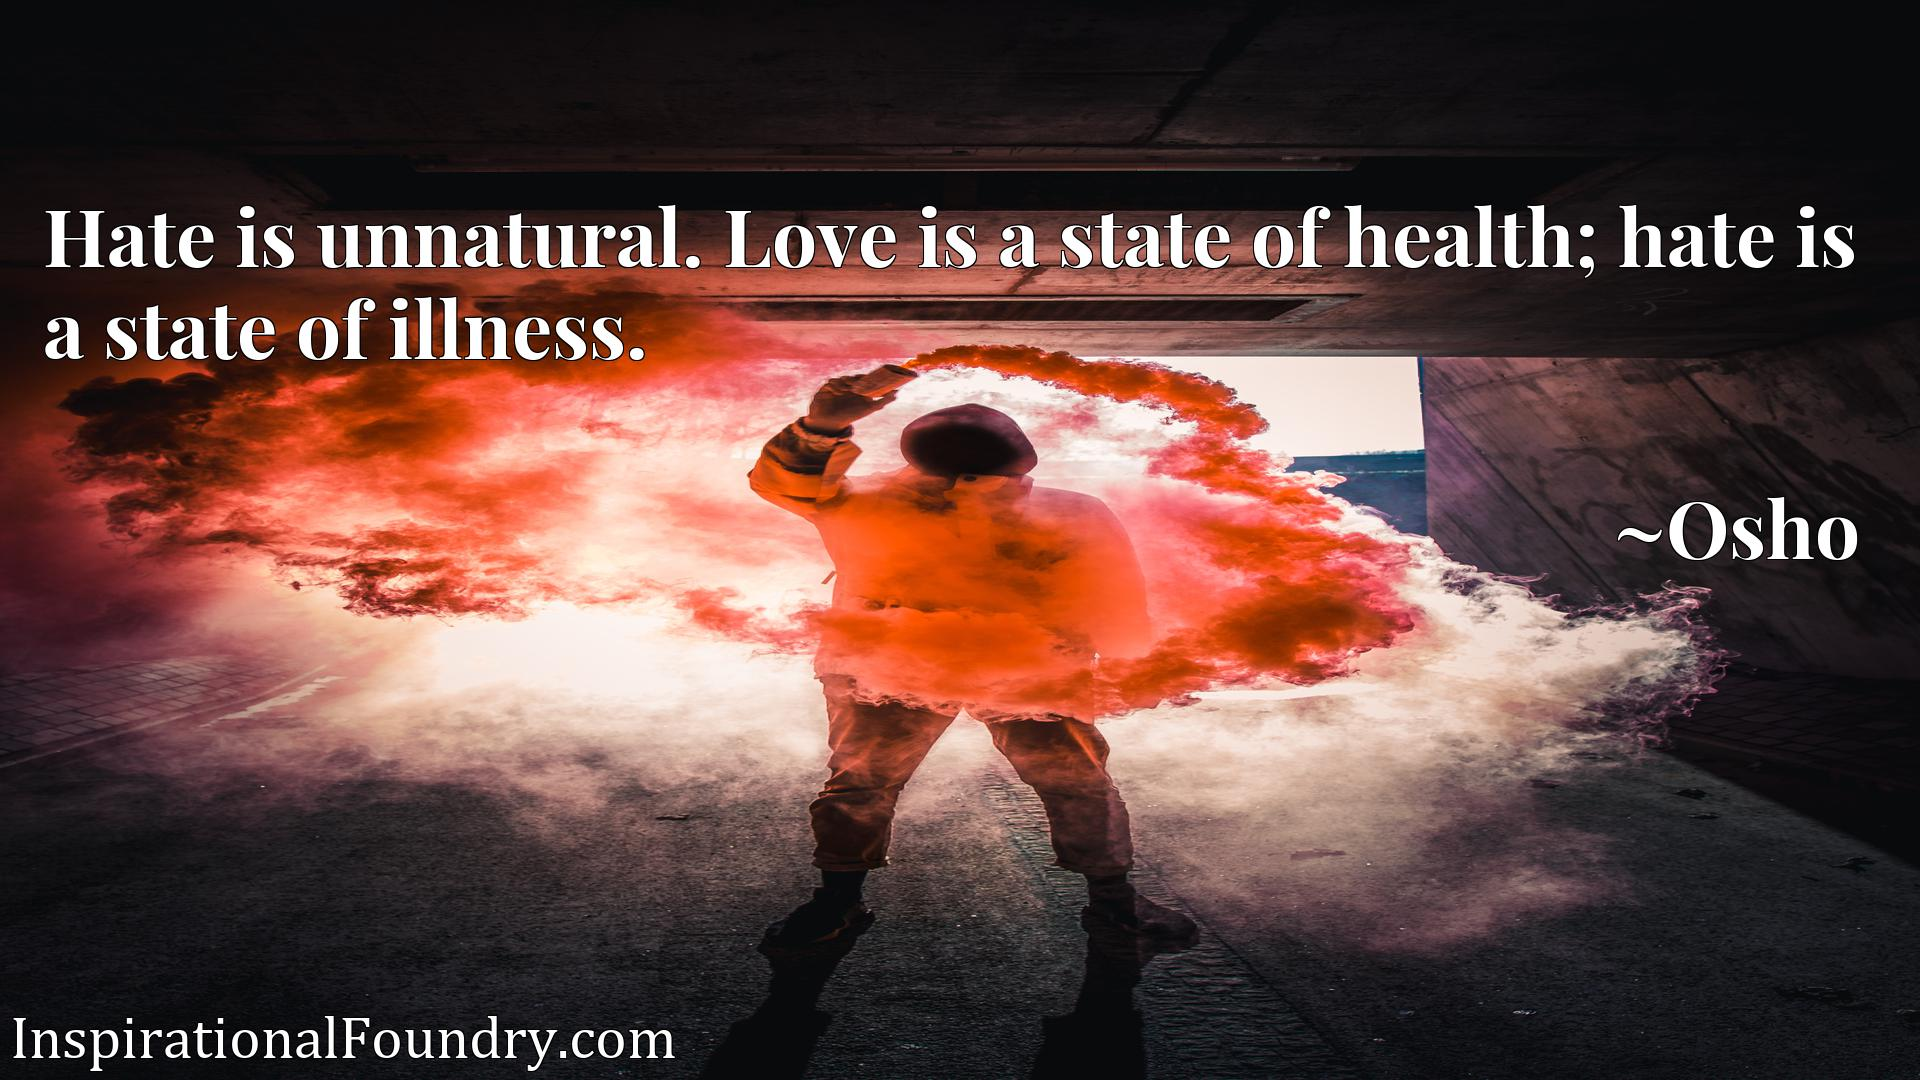 Hate is unnatural. Love is a state of health; hate is a state of illness.